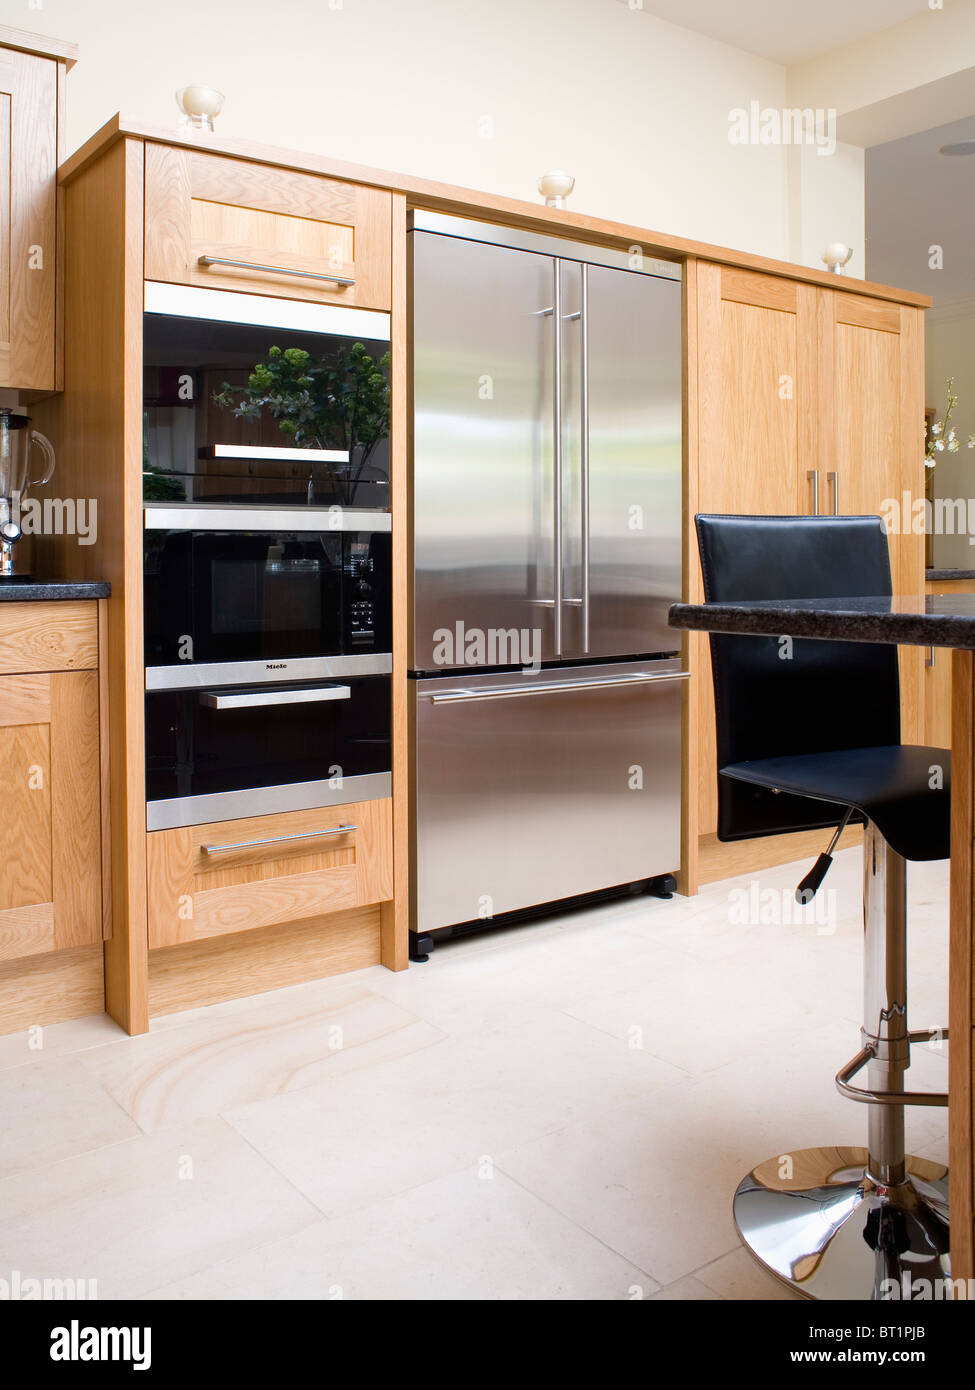 Limestone Flooring In Kitchen Large Stainless Steel Refrigerator And Double Ovens In Fitted Unit